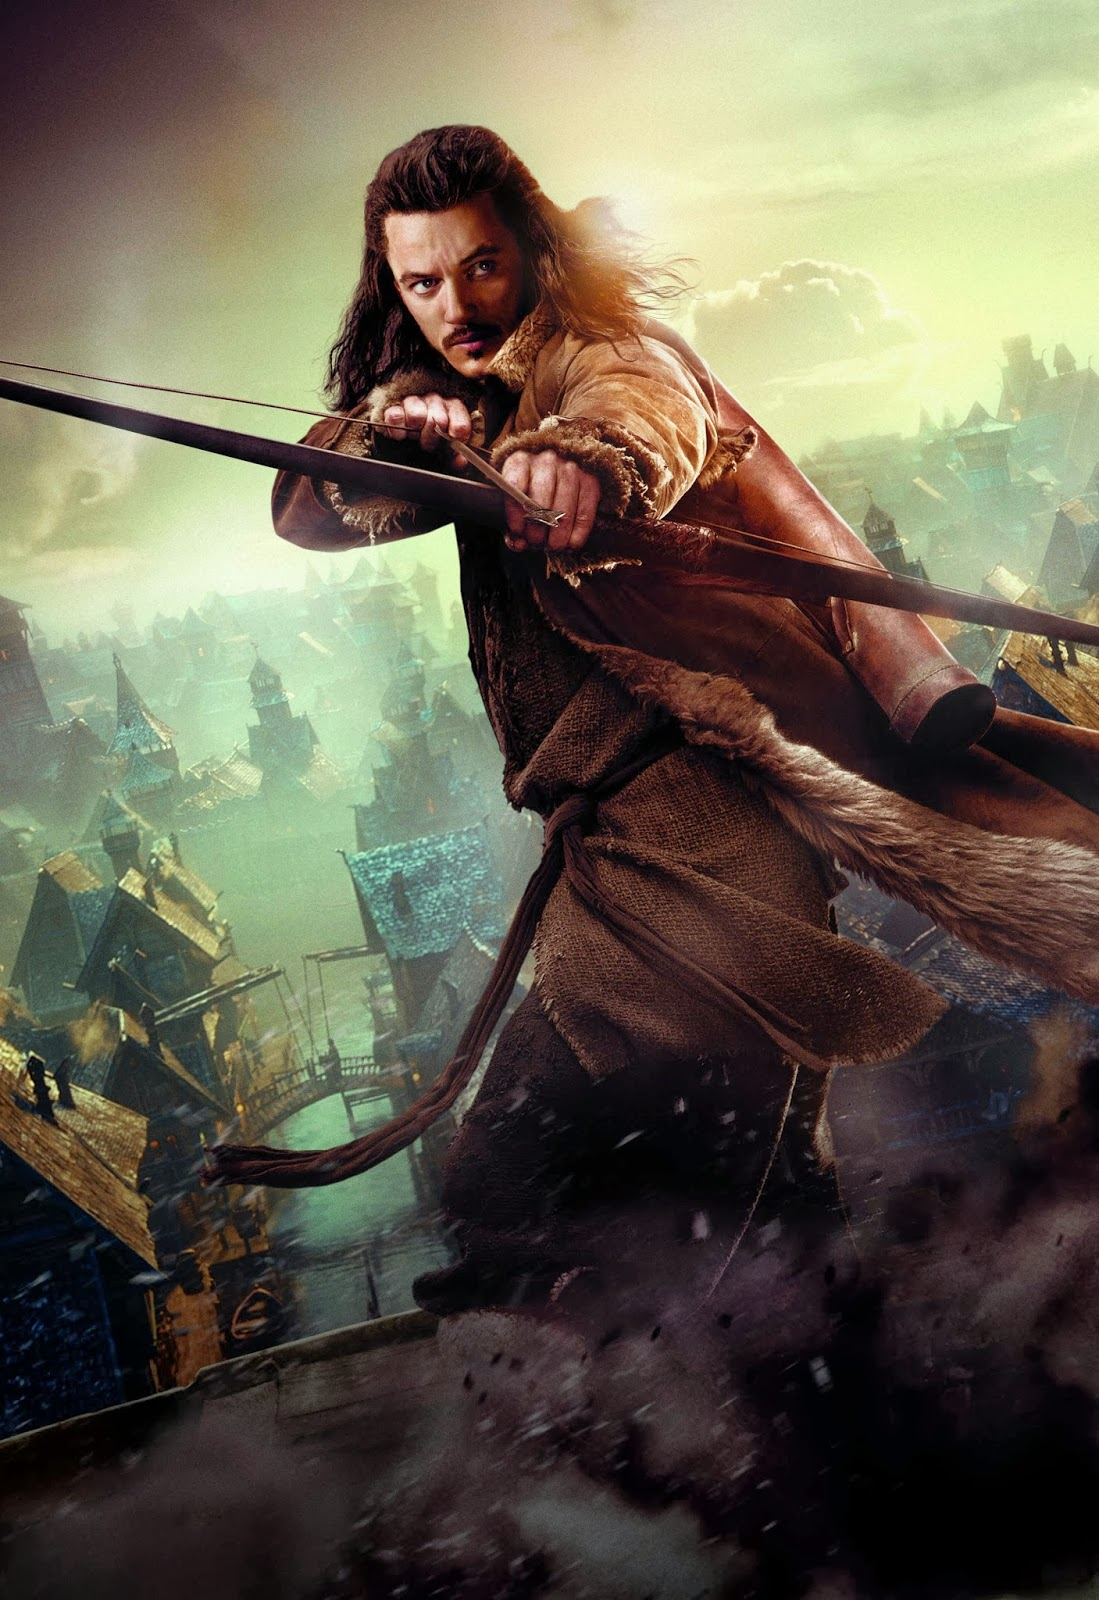 bard the bowman images bard the bowman hd wallpaper and